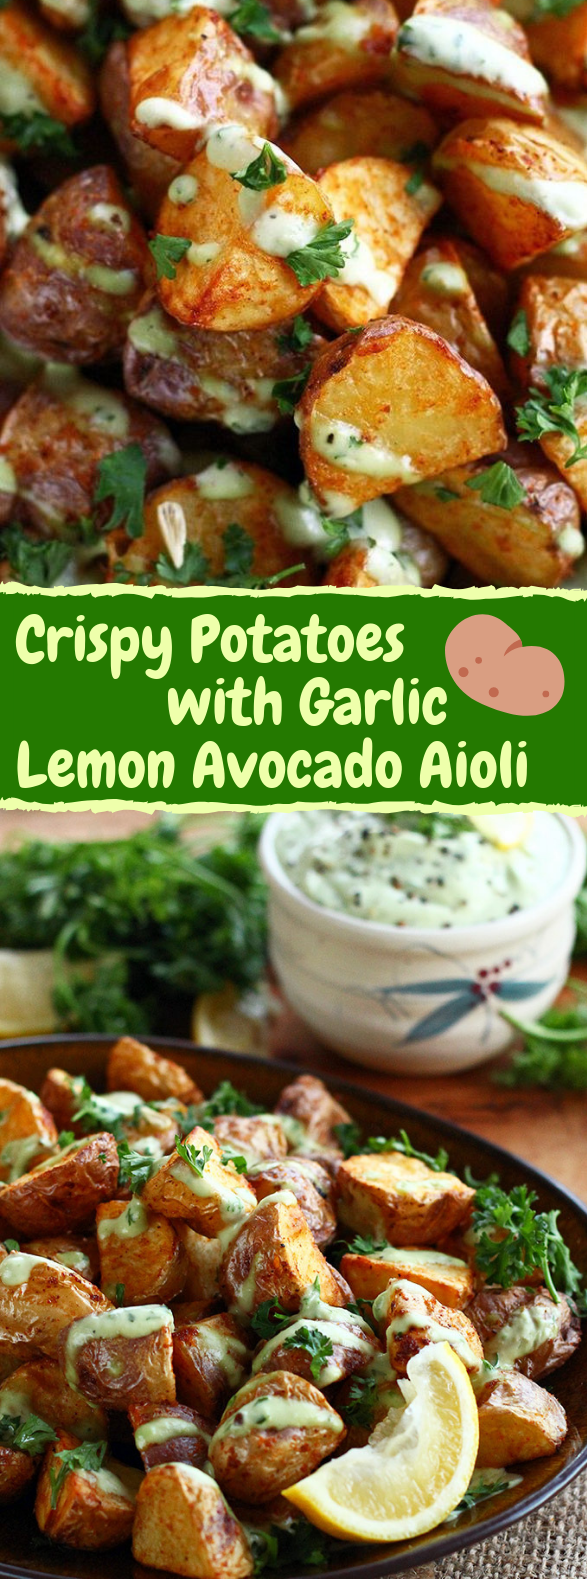 CRISPY POTATOES WITH GARLIC LEMON AVOCADO AIOLI #Vegan #glutenfree